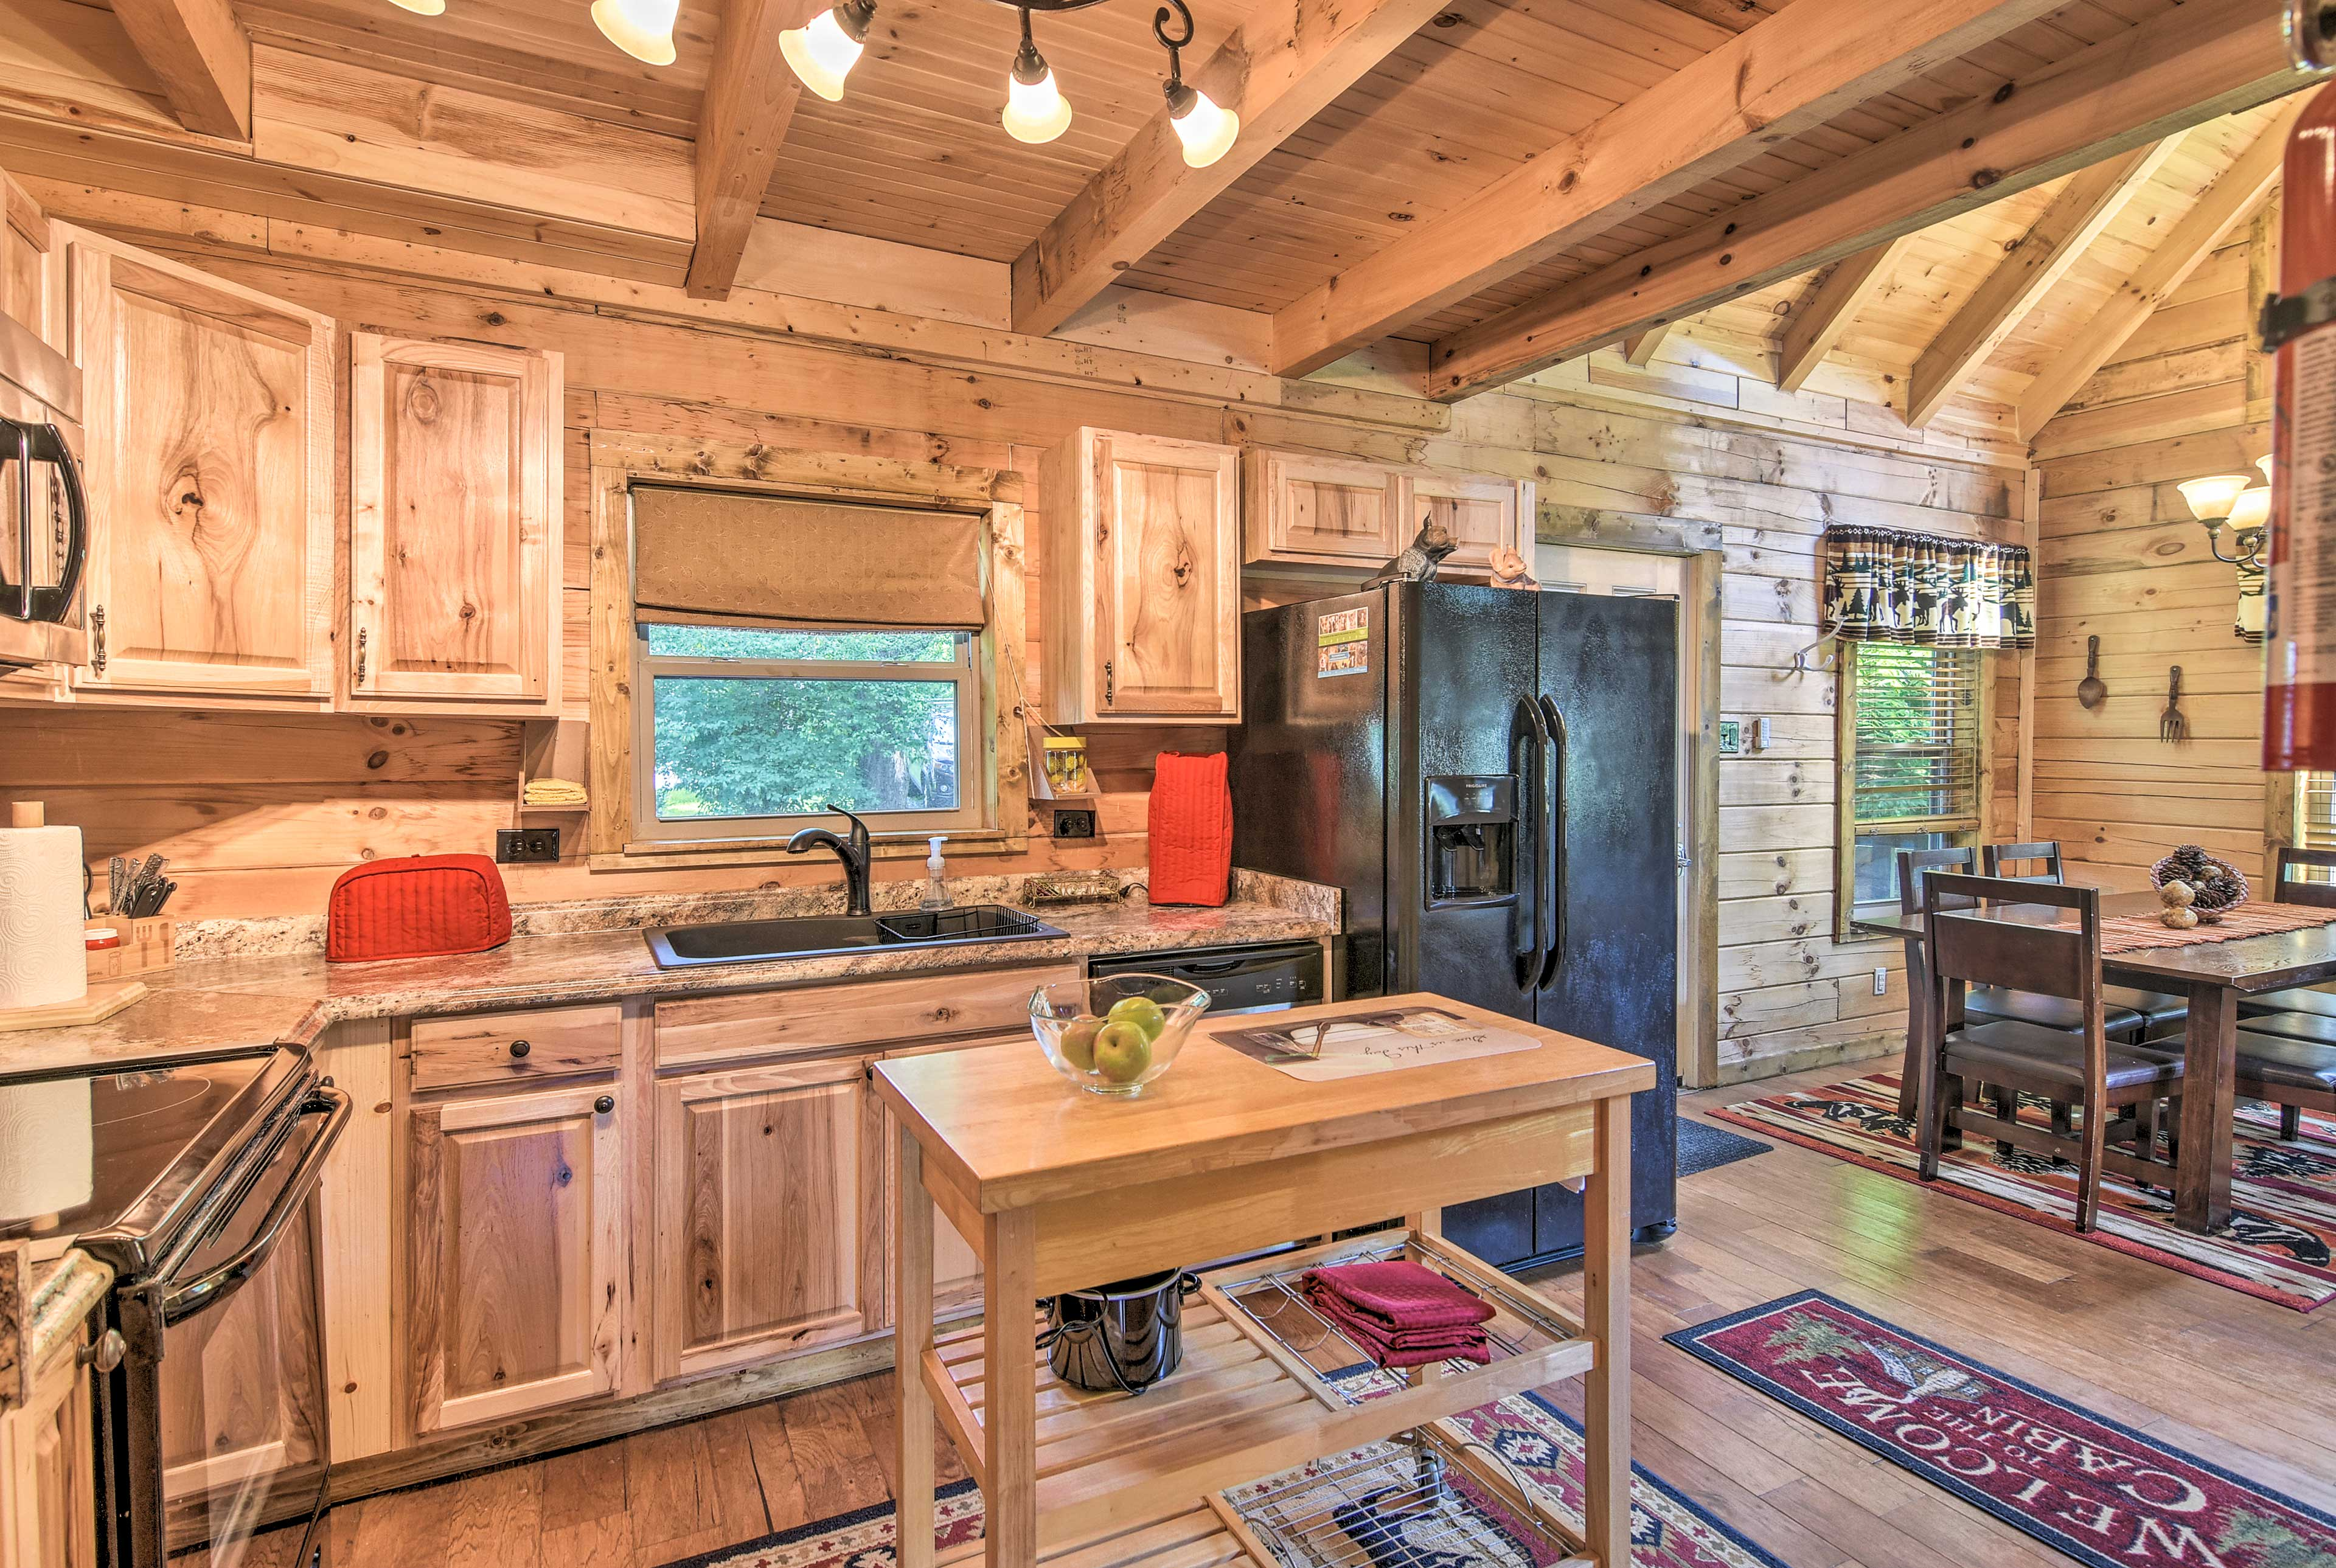 This fully equipped kitchen has everything you'll need!